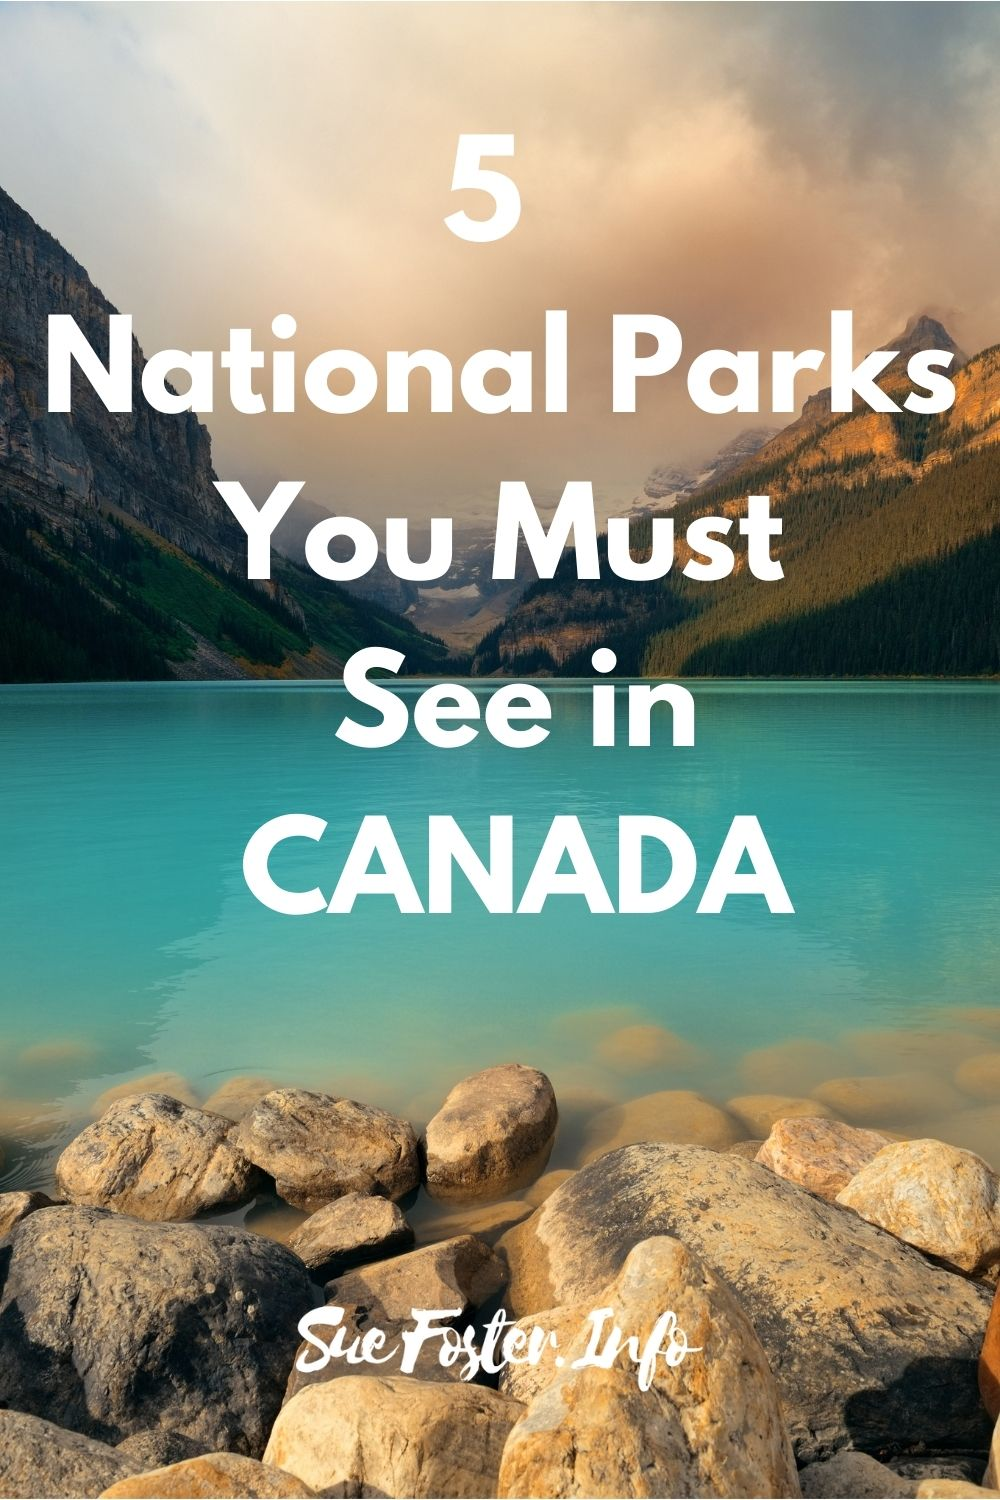 5 National Parks You Must See in Canada